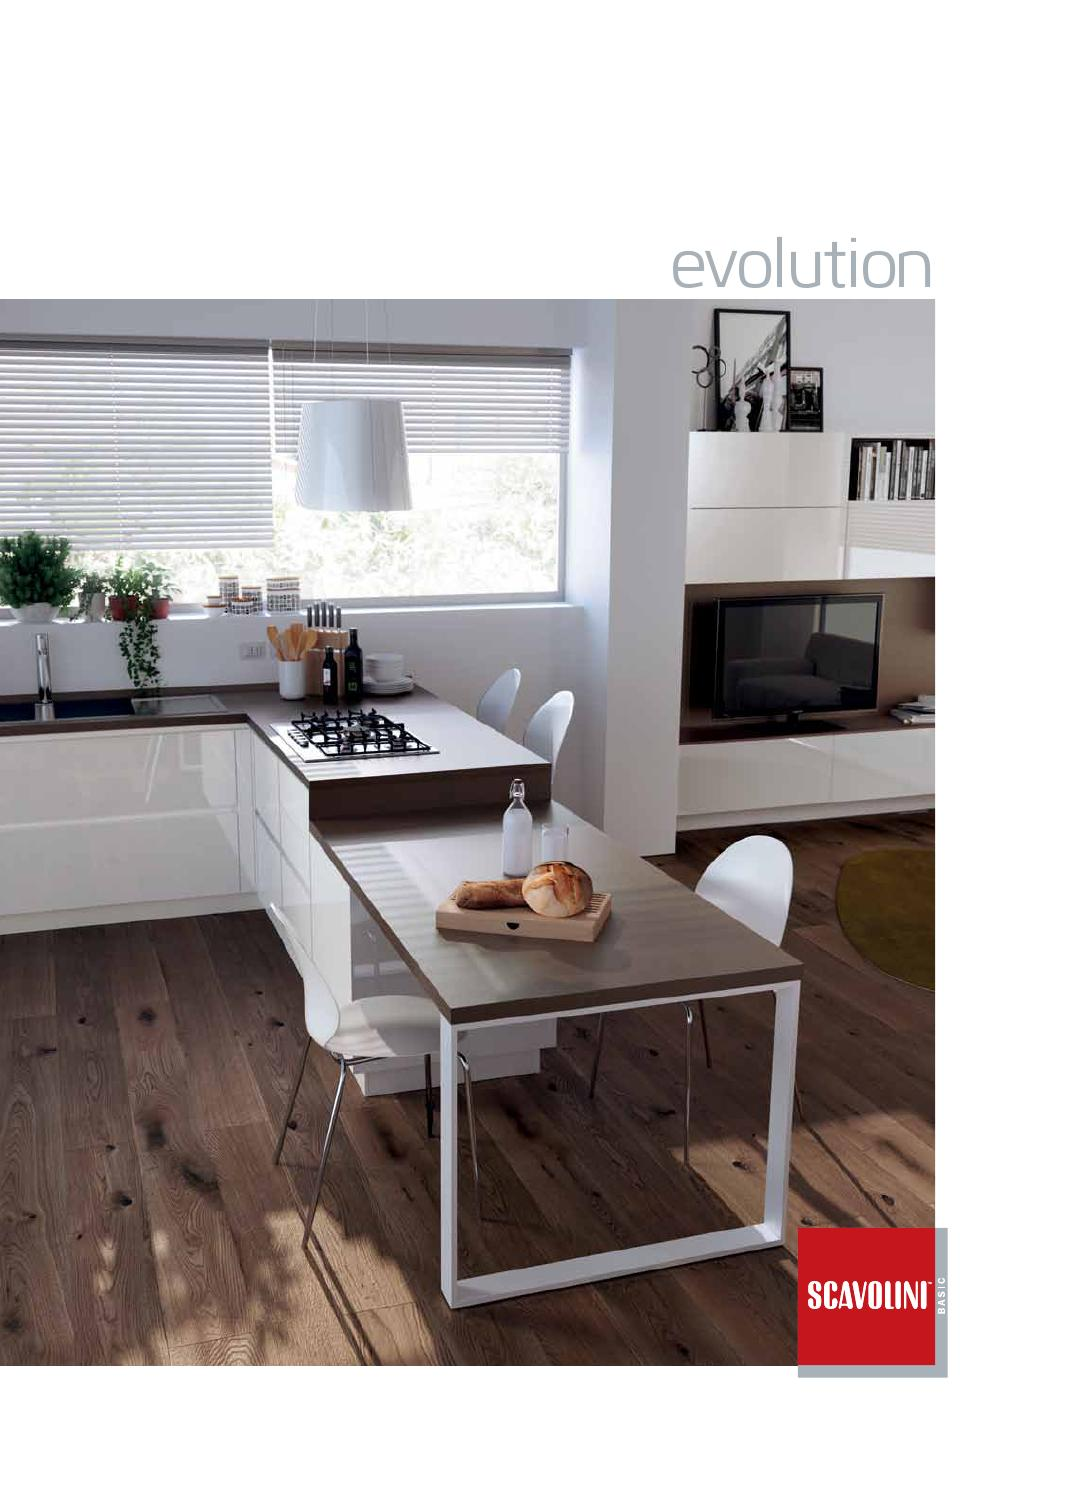 Scavolini Cucine | Evolution Kitchen by Accento KBB - issuu